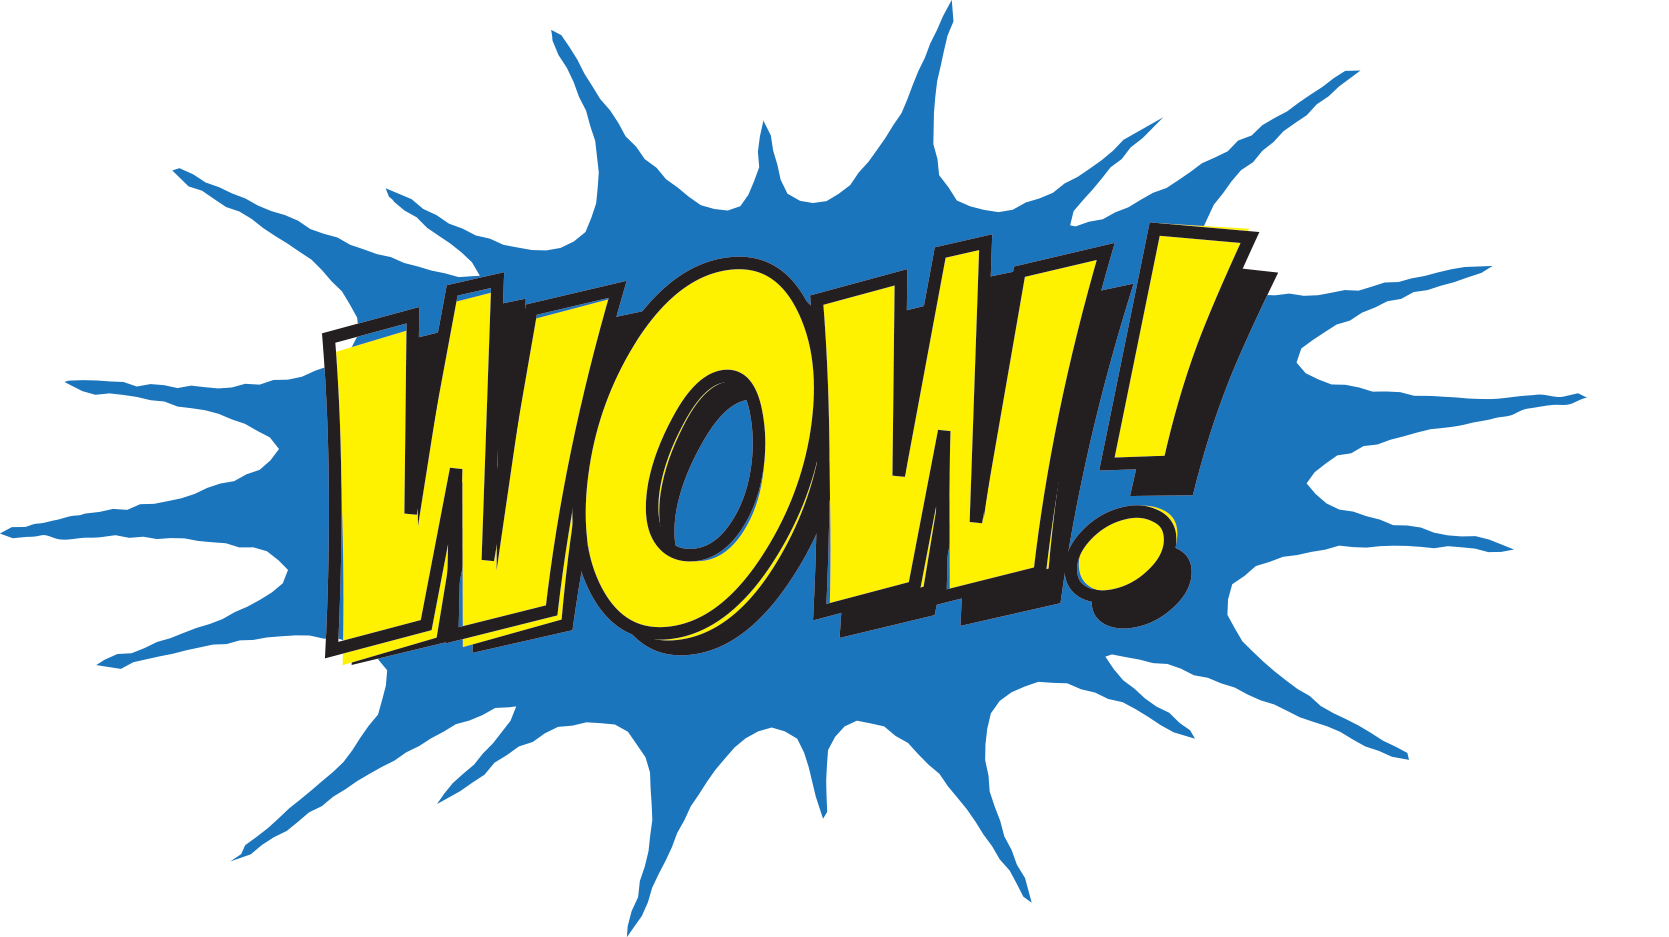 Comic book wow clipart clipart royalty free Wow Clipart | Free download best Wow Clipart on ClipArtMag.com clipart royalty free